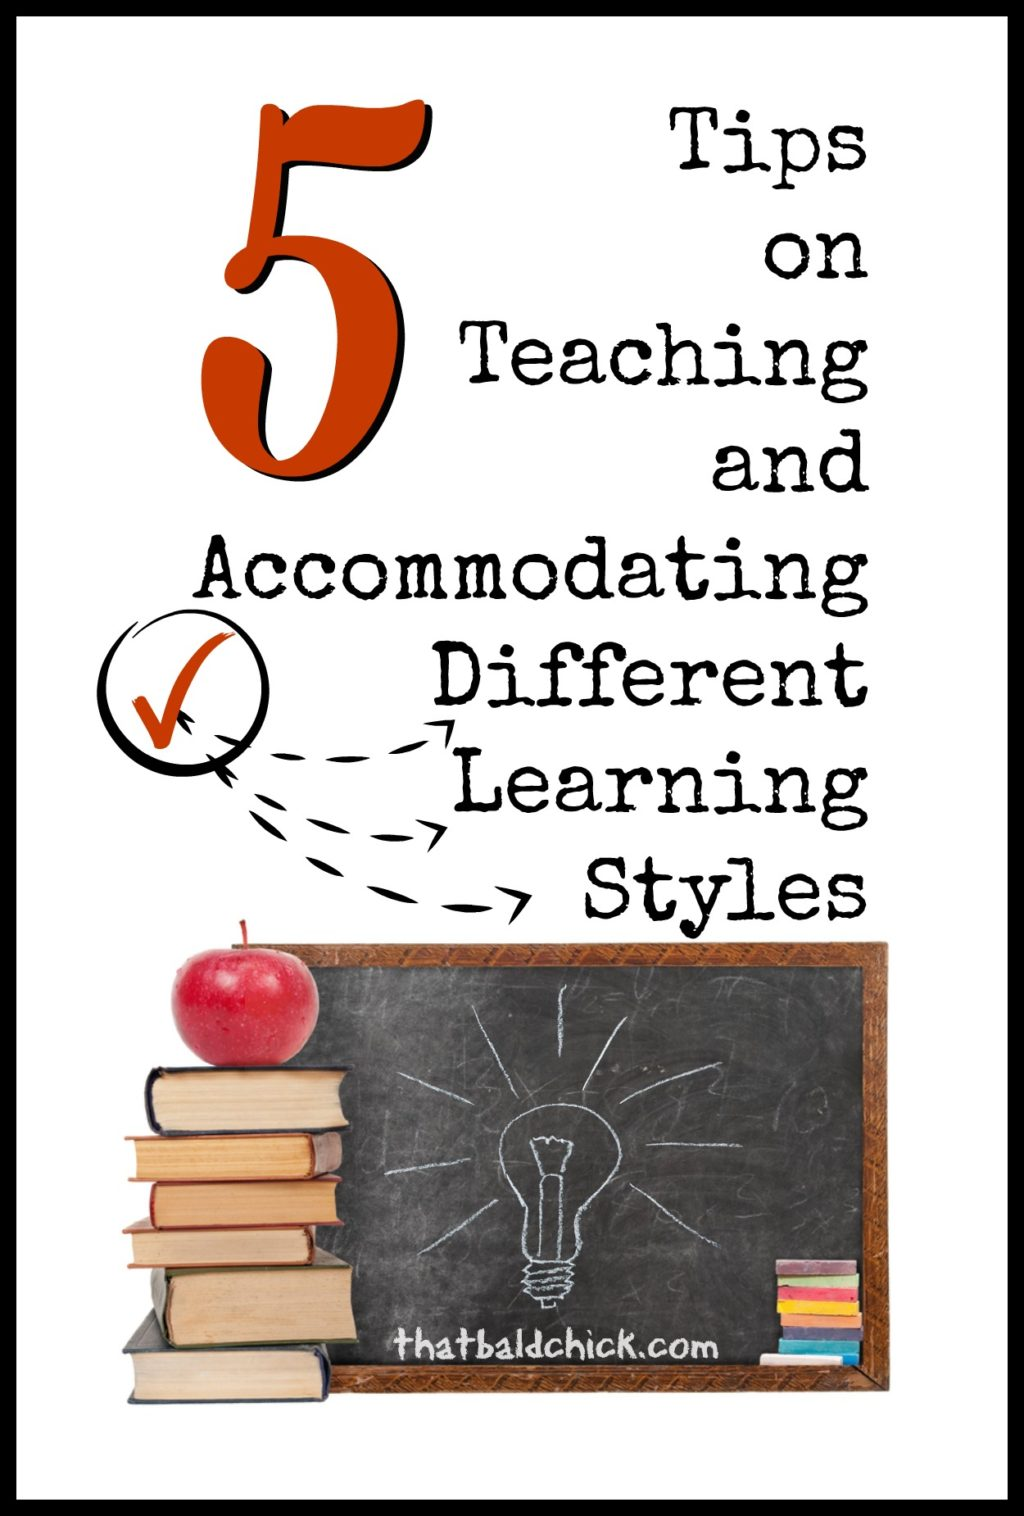 5 tips on teaching and accommodating different learning styles via @thatbaldchick